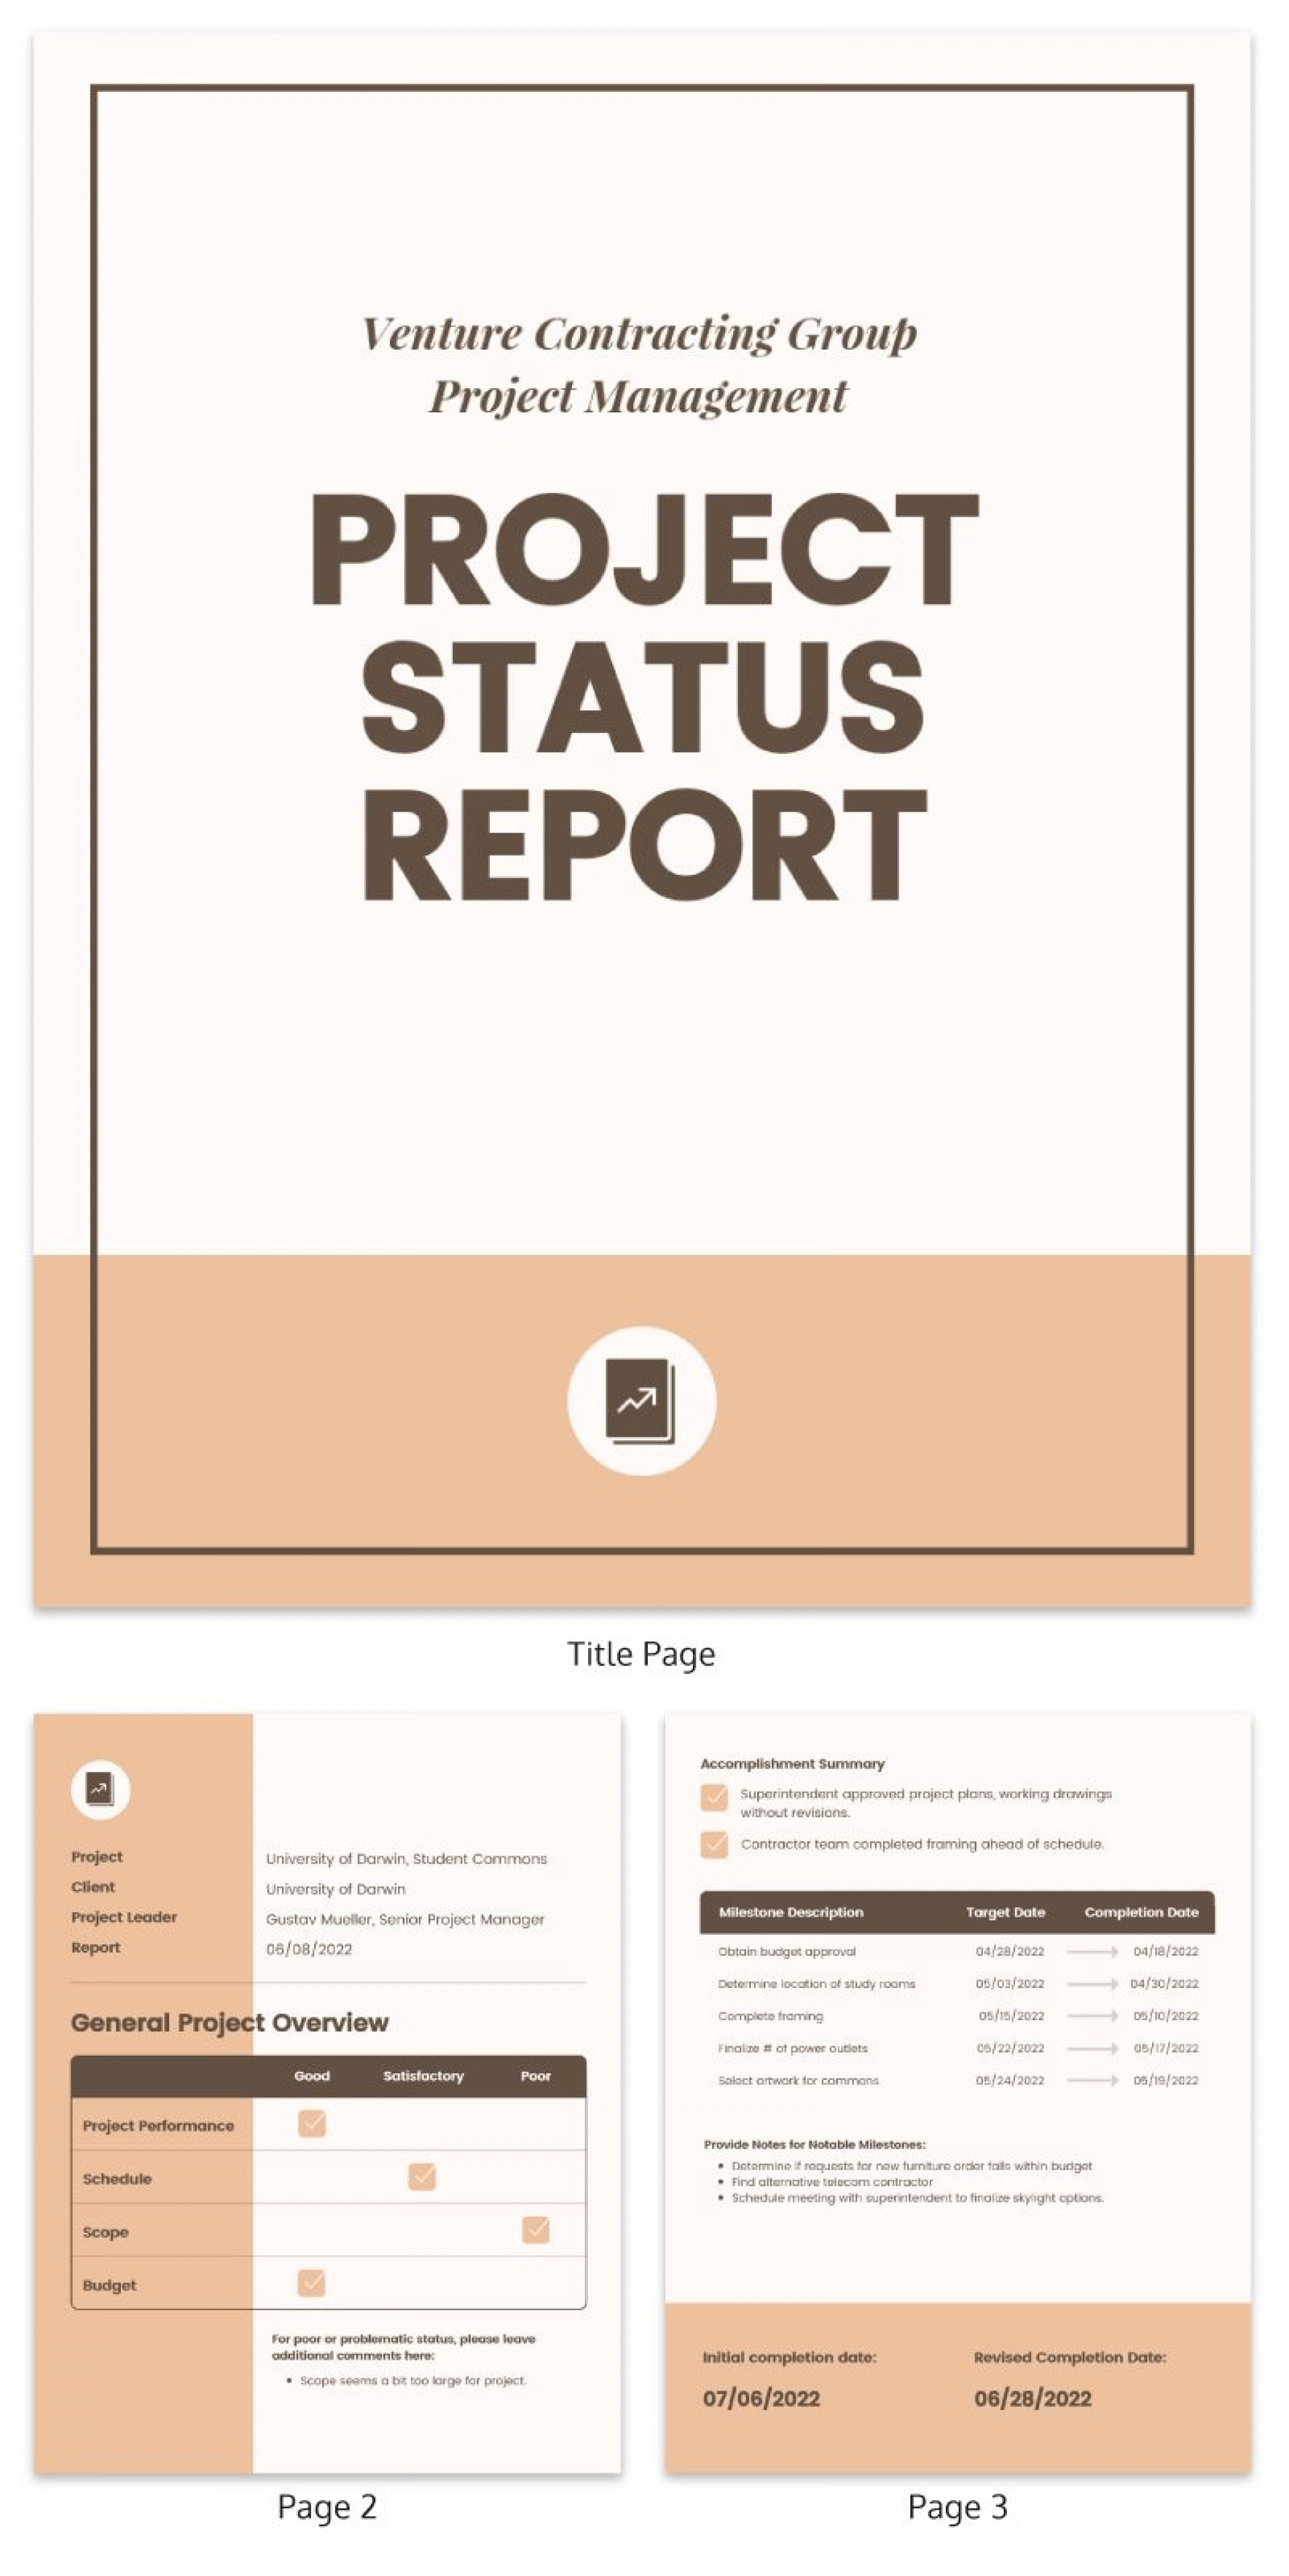 005 Awesome Project Management Statu Report Template Free Example  Excel Weekly Word1920